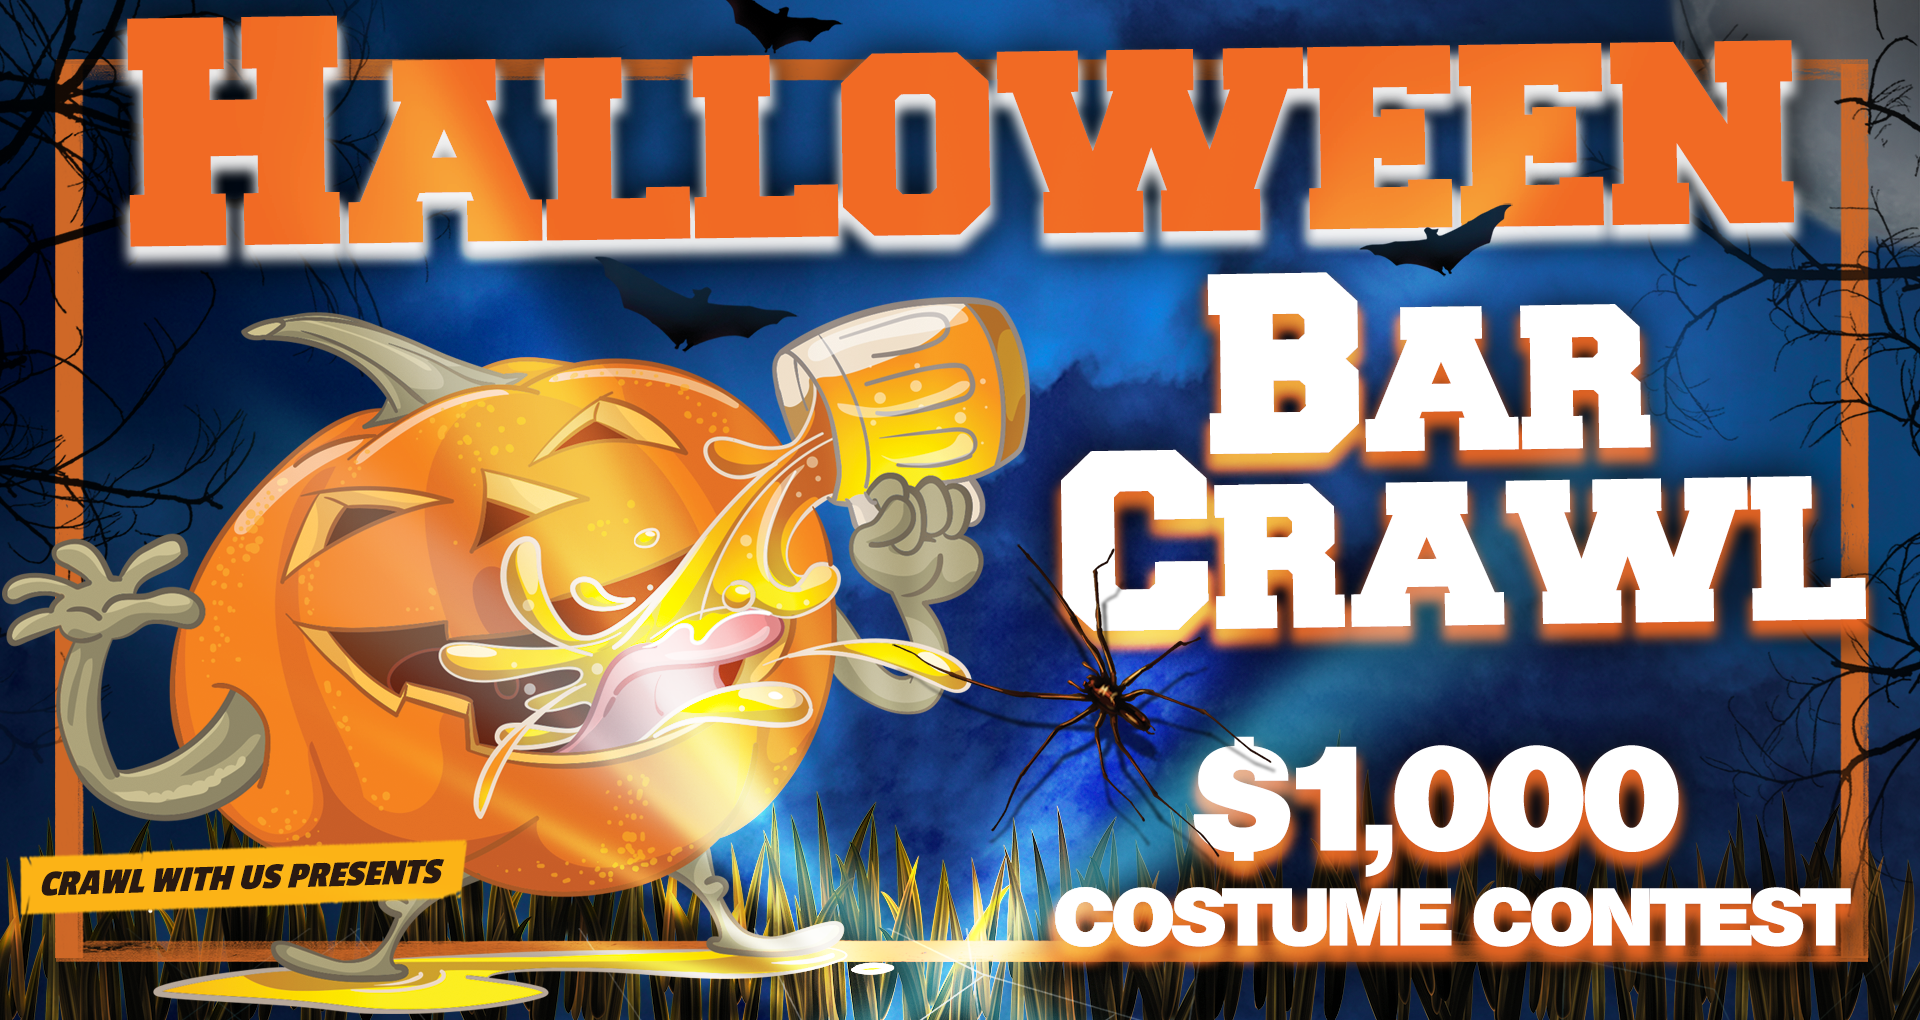 Halloween Bar Crawl - Atlanta